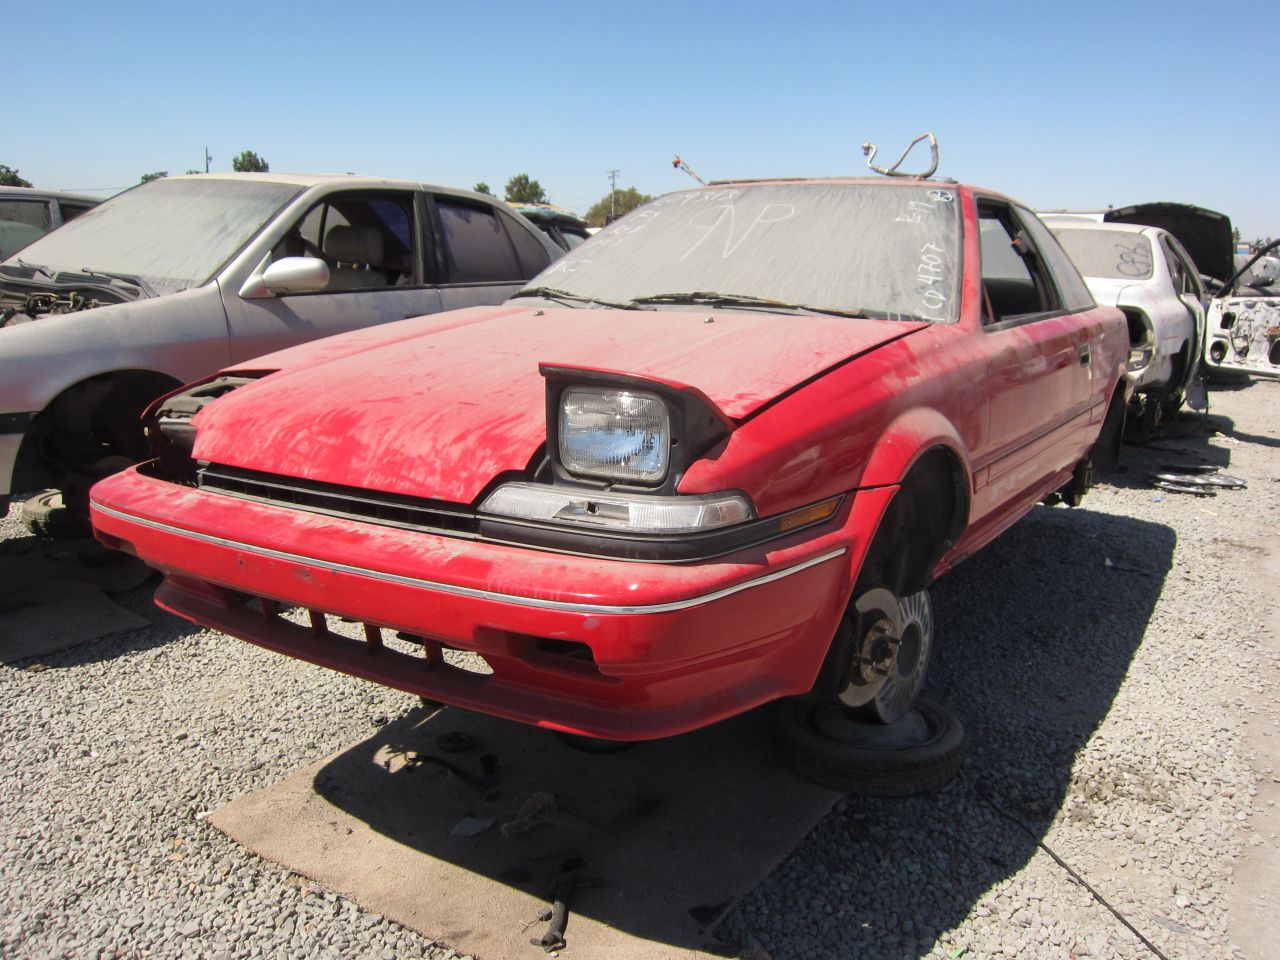 junkyard find 1990 toyota corolla gt s the truth about cars junkyard find 1990 toyota corolla gt s